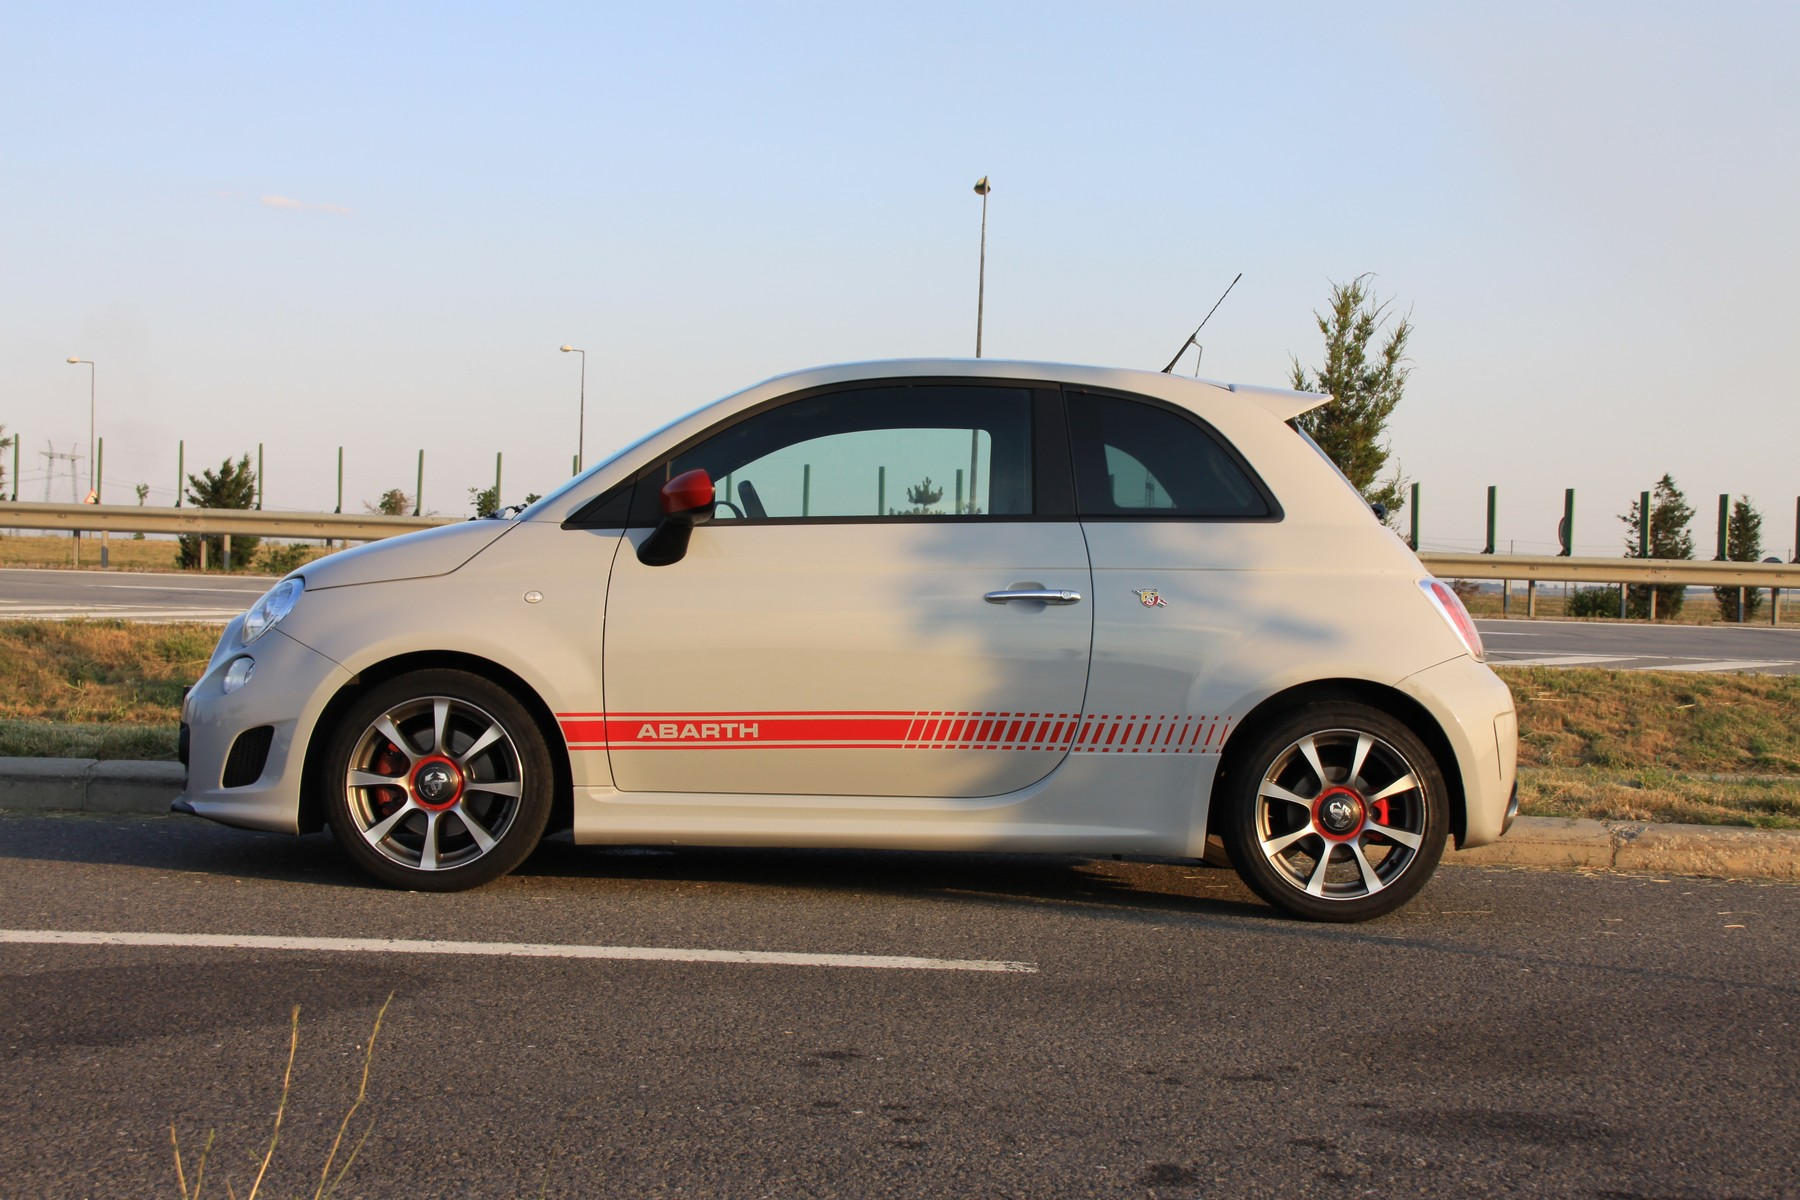 Test Drive 4tuning: Fiat 500 Abarth - Test Drive 4tuning: Fiat 500 Abarth